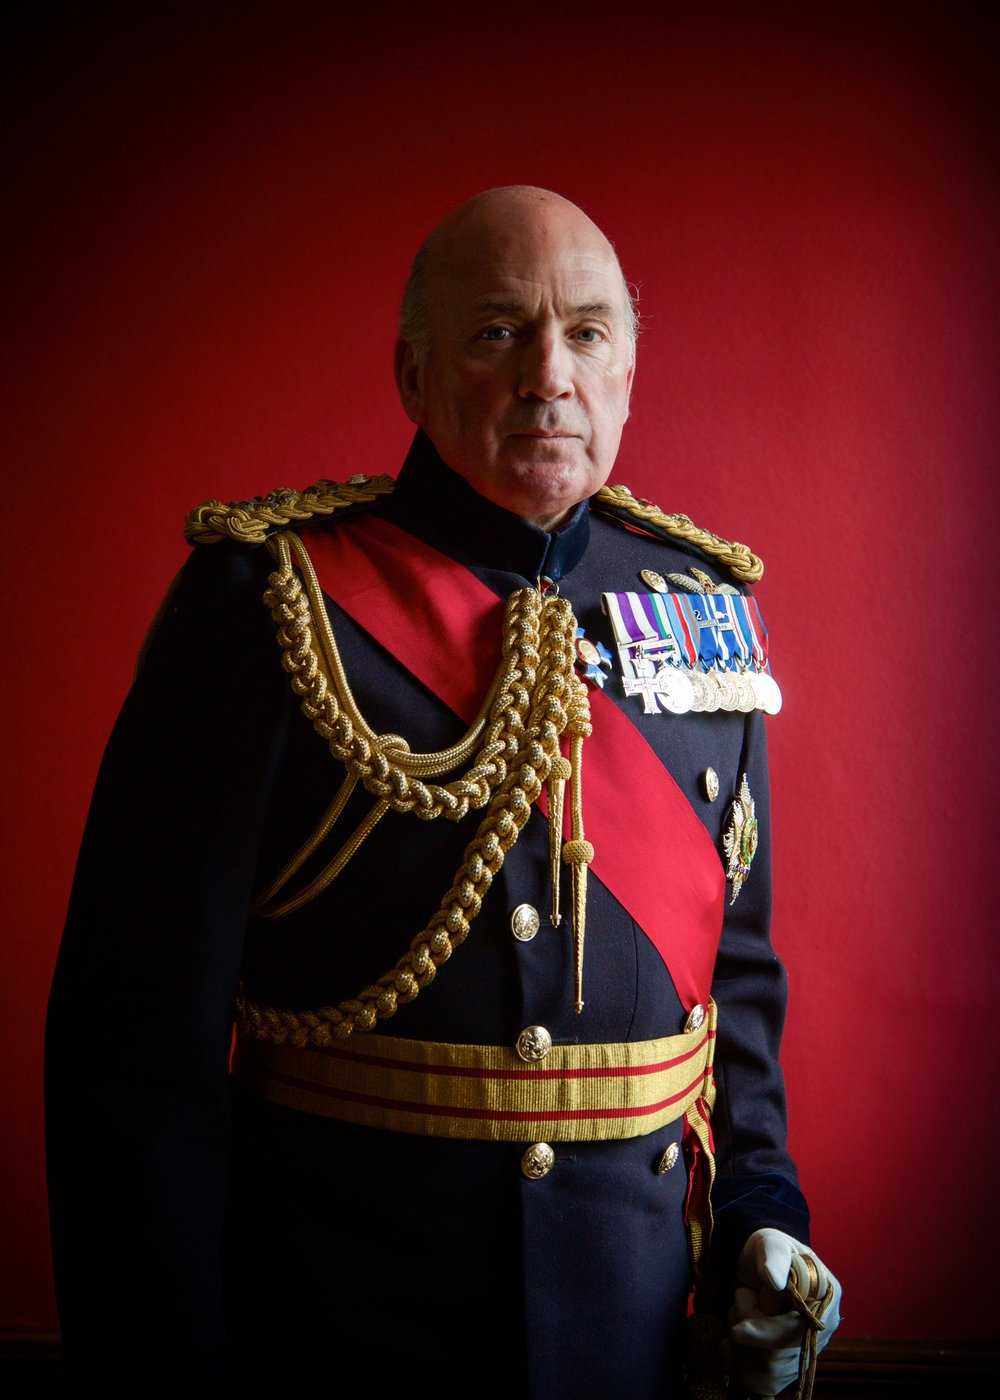 Richard Dannatt - Boots on the Ground